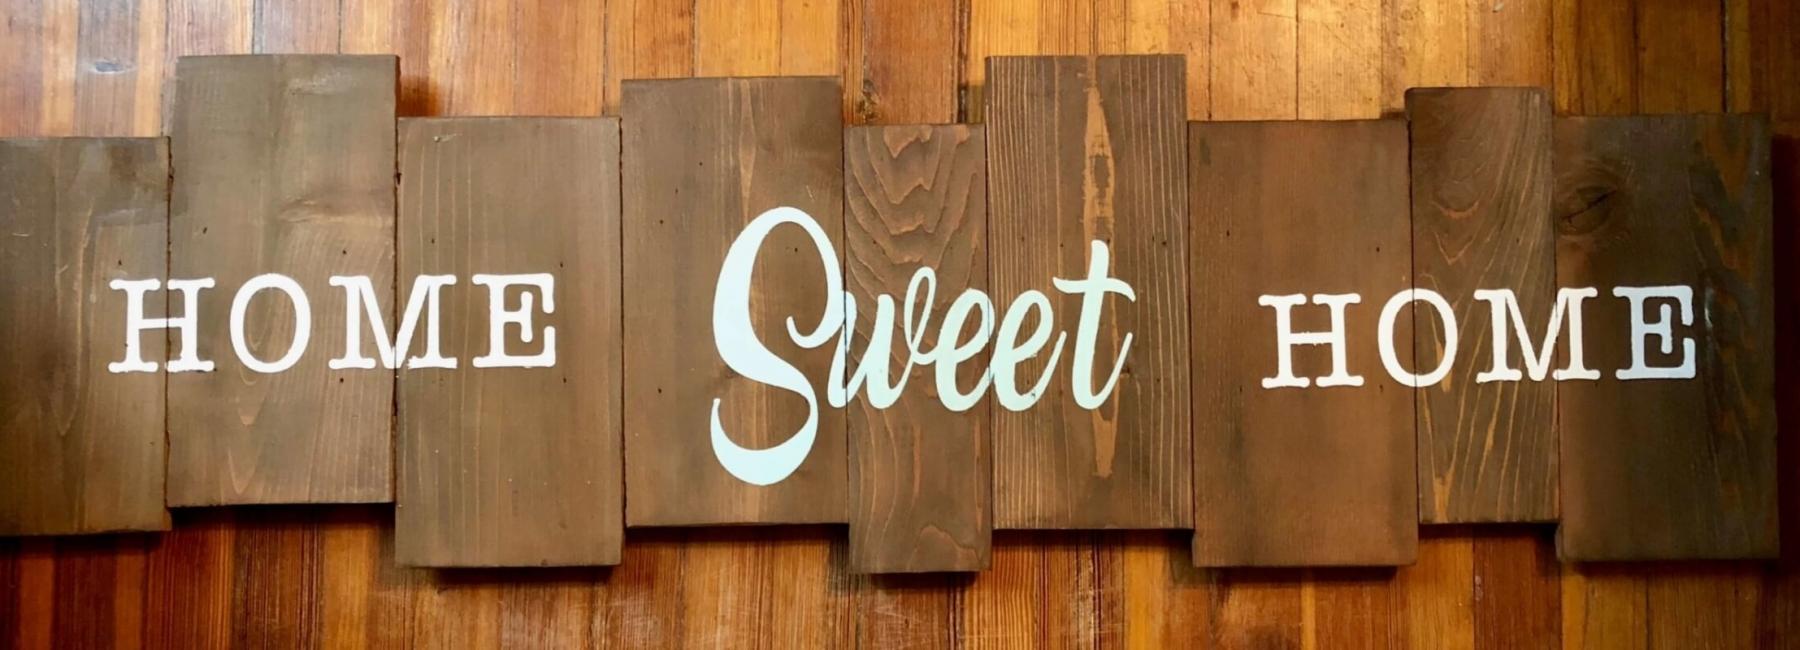 Wood-Sign-Home-Sweet-Home-scaled-2400x800_c